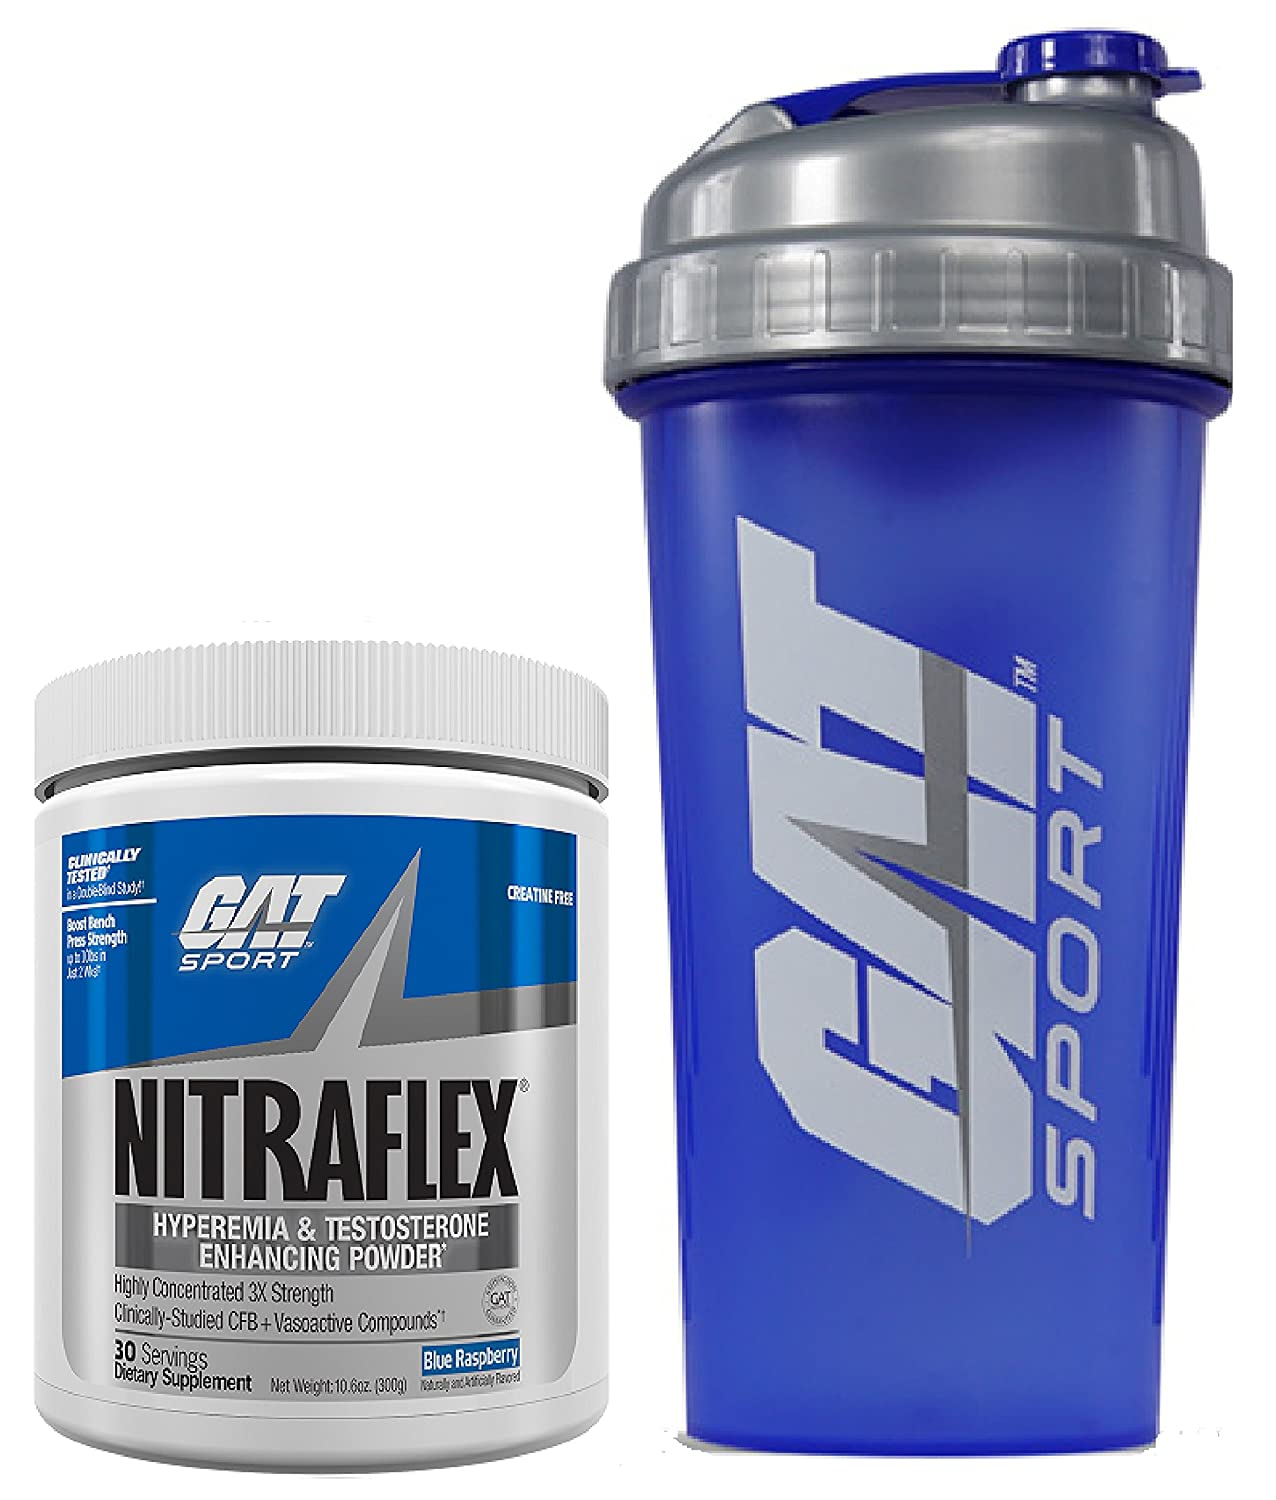 GAT Clinically Tested Nitraflex, Testosterone Enhancing Pre Workout 300 g 30 servings with BONUS GAT Shaker Bottle Blue Raspberry